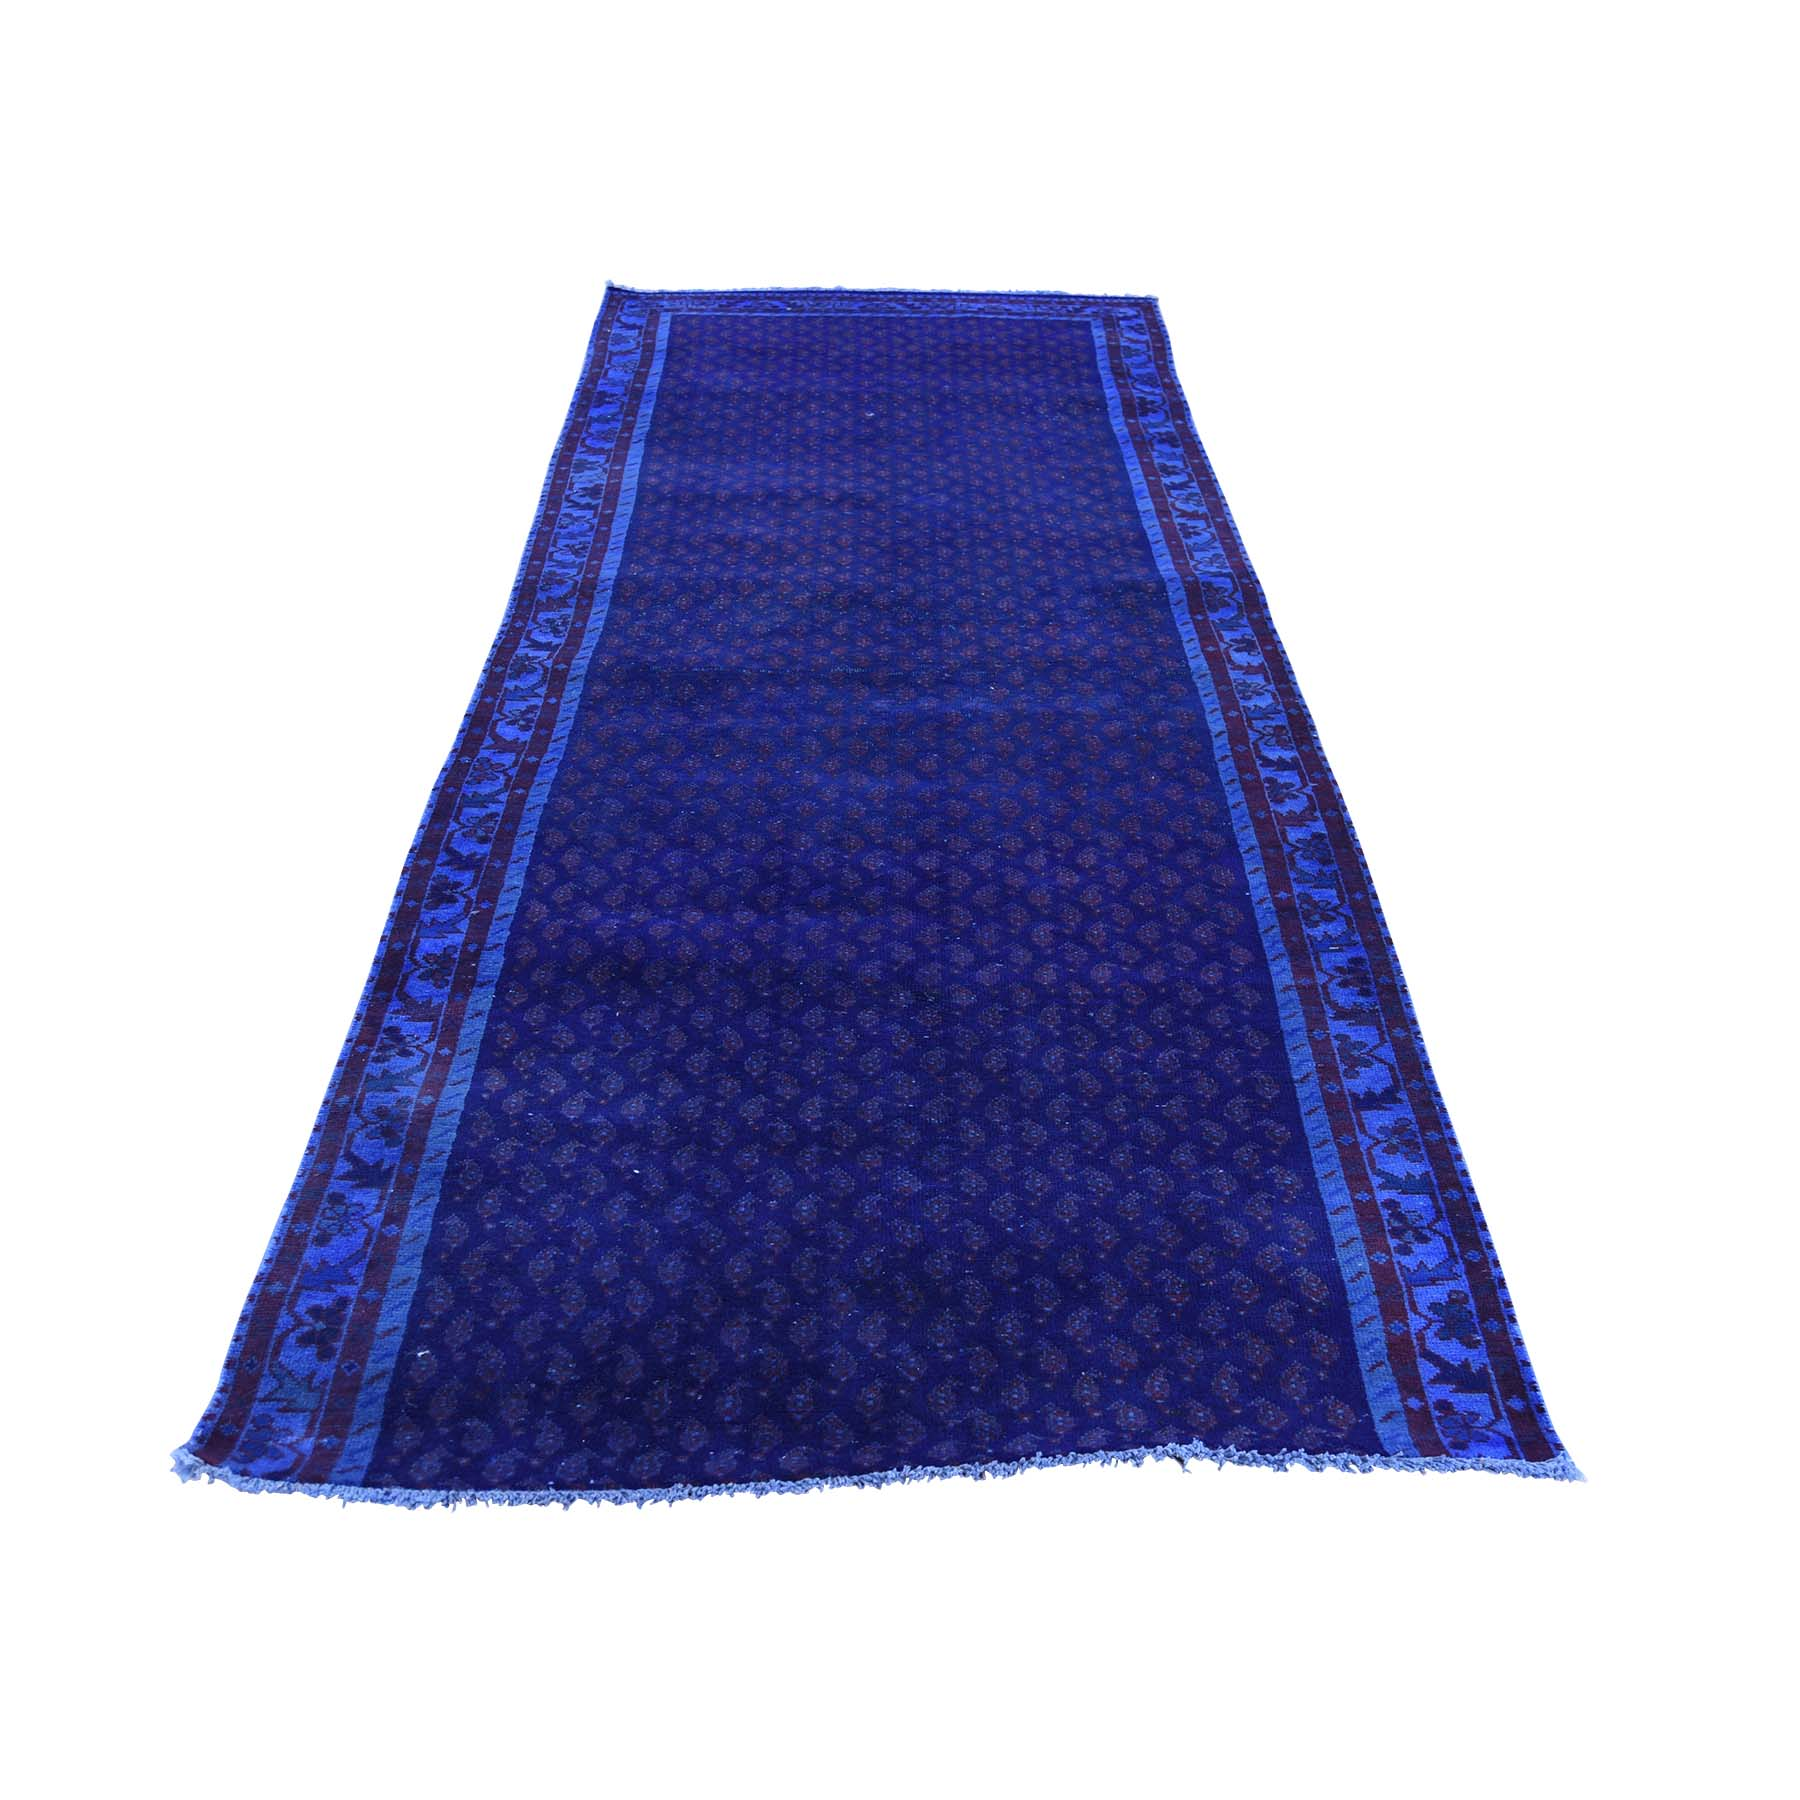 3'3''X9'10'' Hand-Knotted Vintage Overdyed Persian Sarouk Mir Fragment Wide Runner Rug moac8686